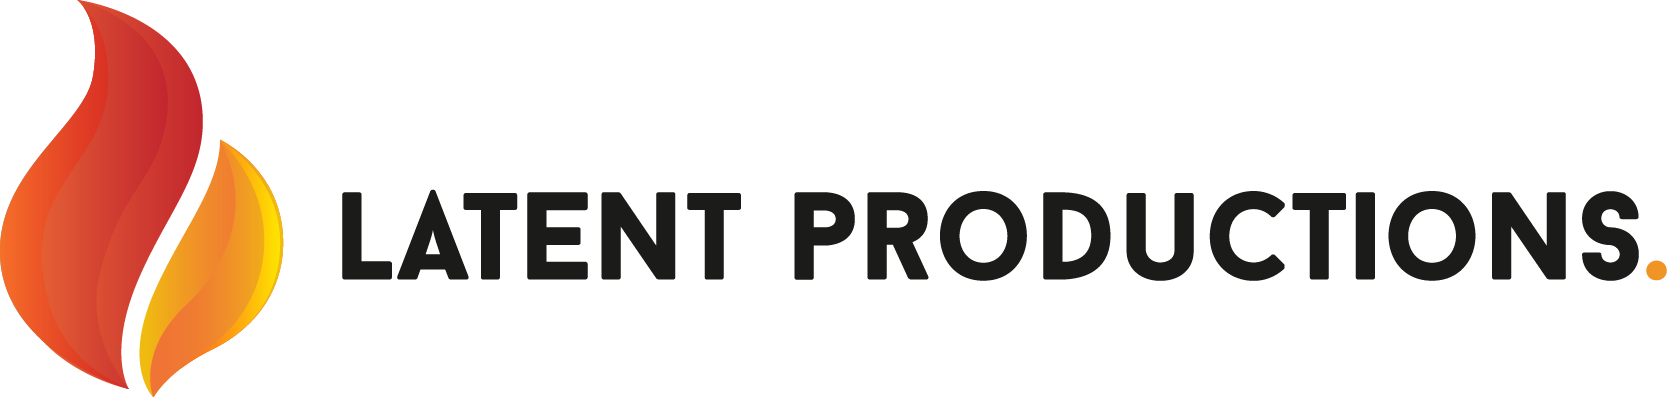 Video Production Toronto   Latent Productions   Video Production Company